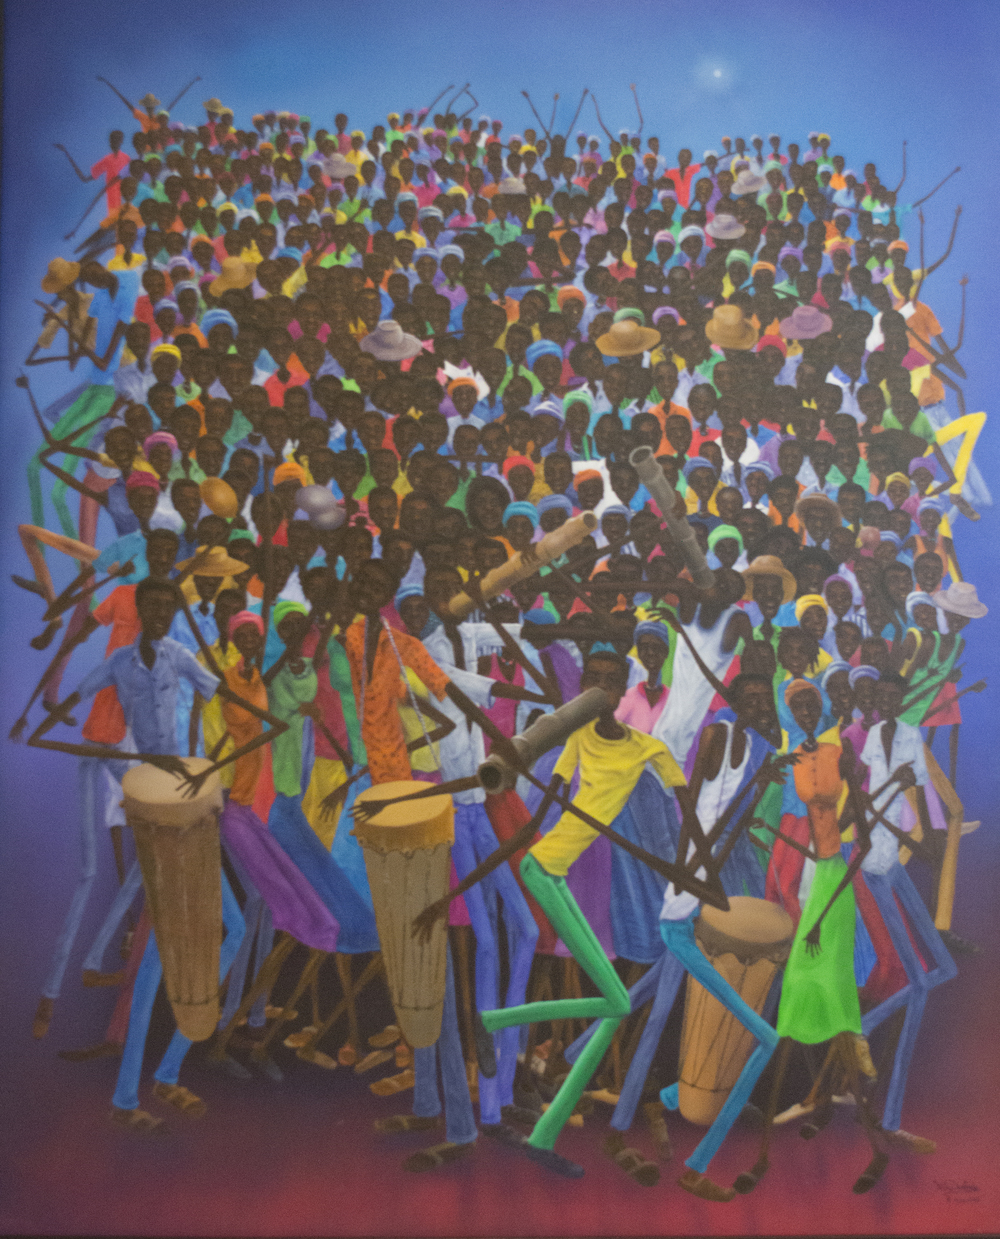 19 - Celebration in Batey by Fritz DesRoches